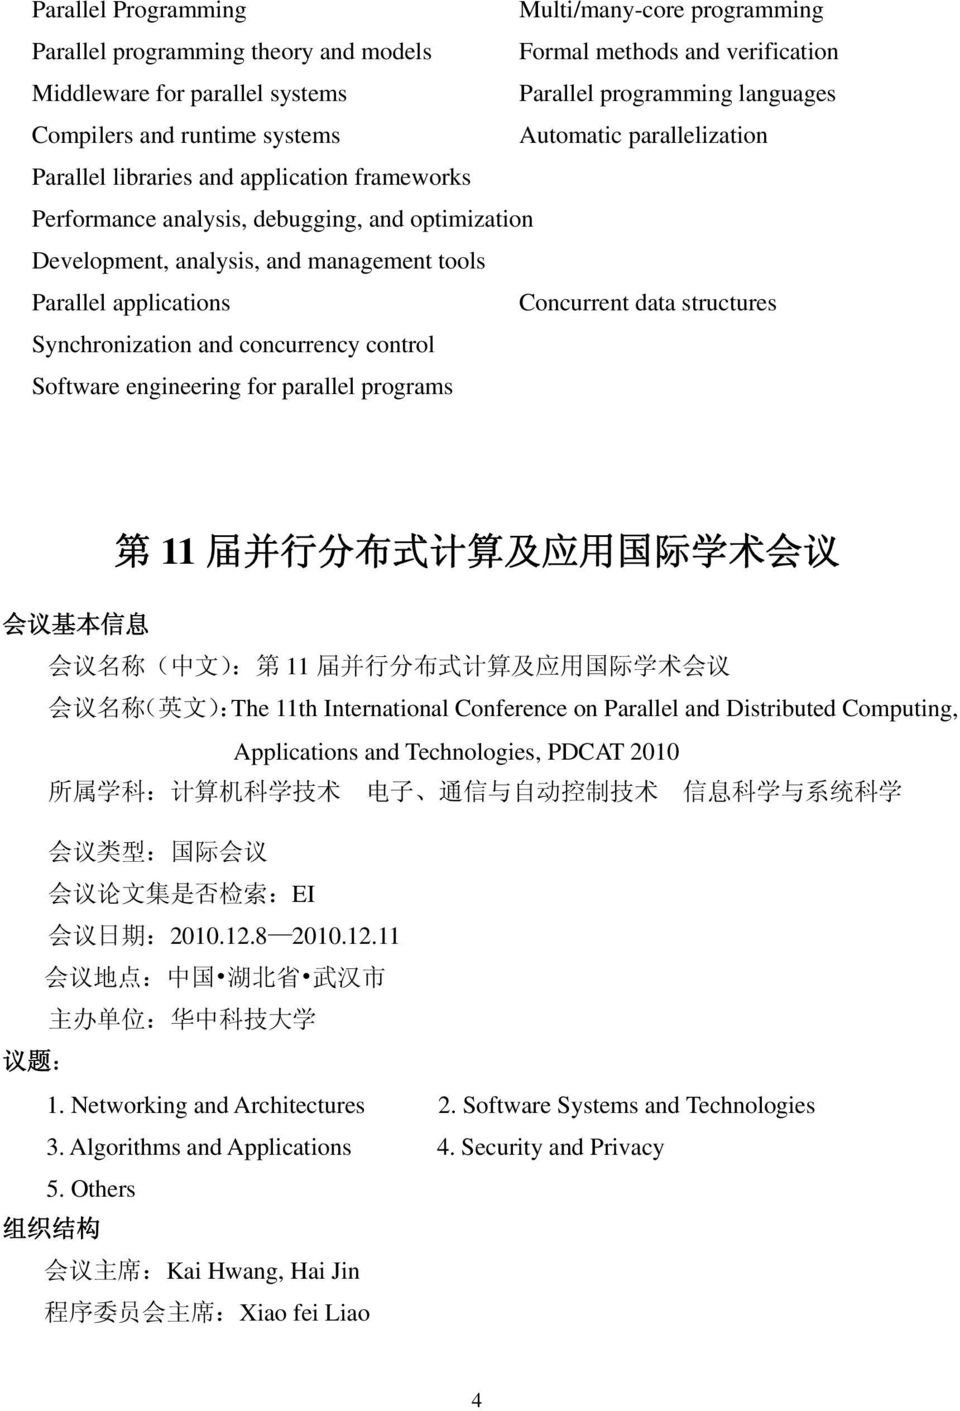 applications Concurrent data structures Synchronization and concurrency control Software engineering for parallel programs 第 11 届 并 行 分 布 式 计 算 及 应 用 国 际 学 术 会 议 会 议 基 本 信 息 会 议 名 称 ( 中 文 ): 第 11 届 并